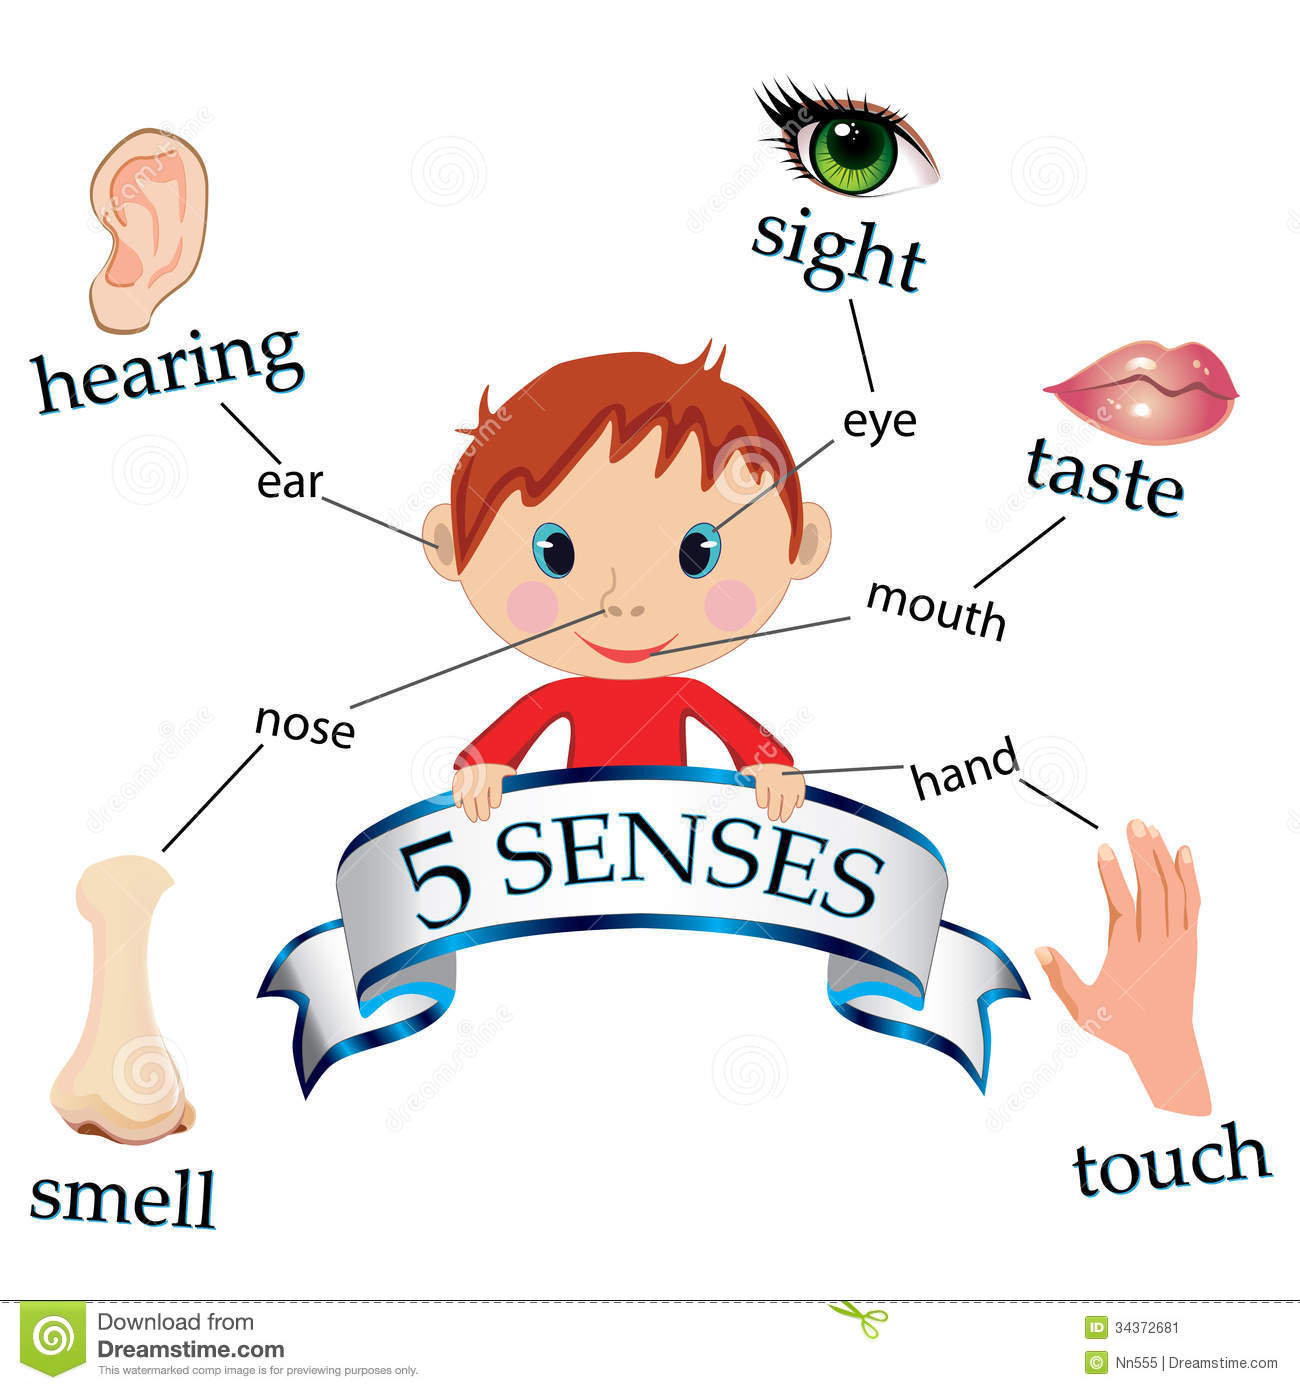 La Educacion Fisica Segun Tristan Unit 2 Natural Science Five Senses And Bones